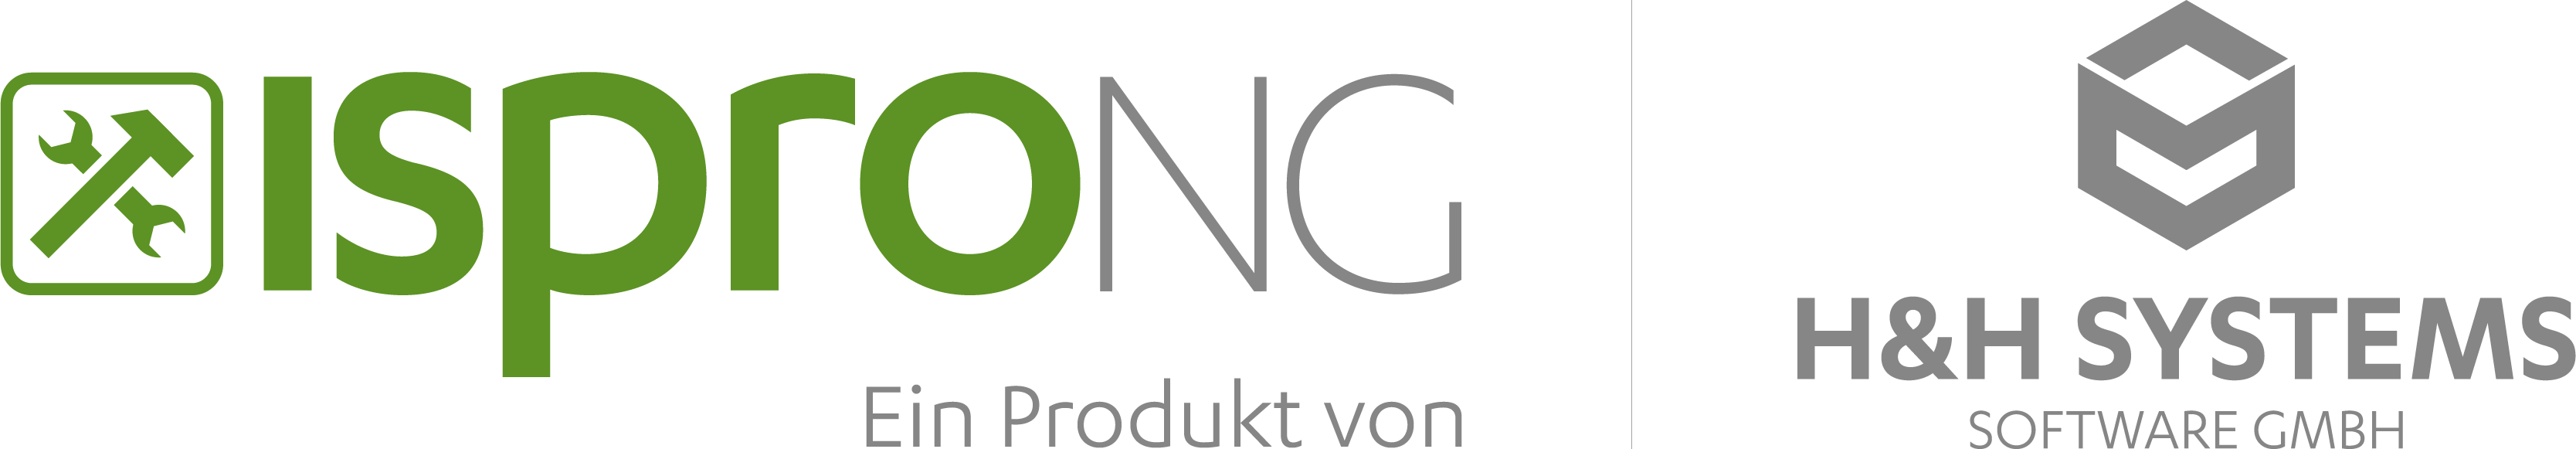 Combined logo isproNG - H&H Systems